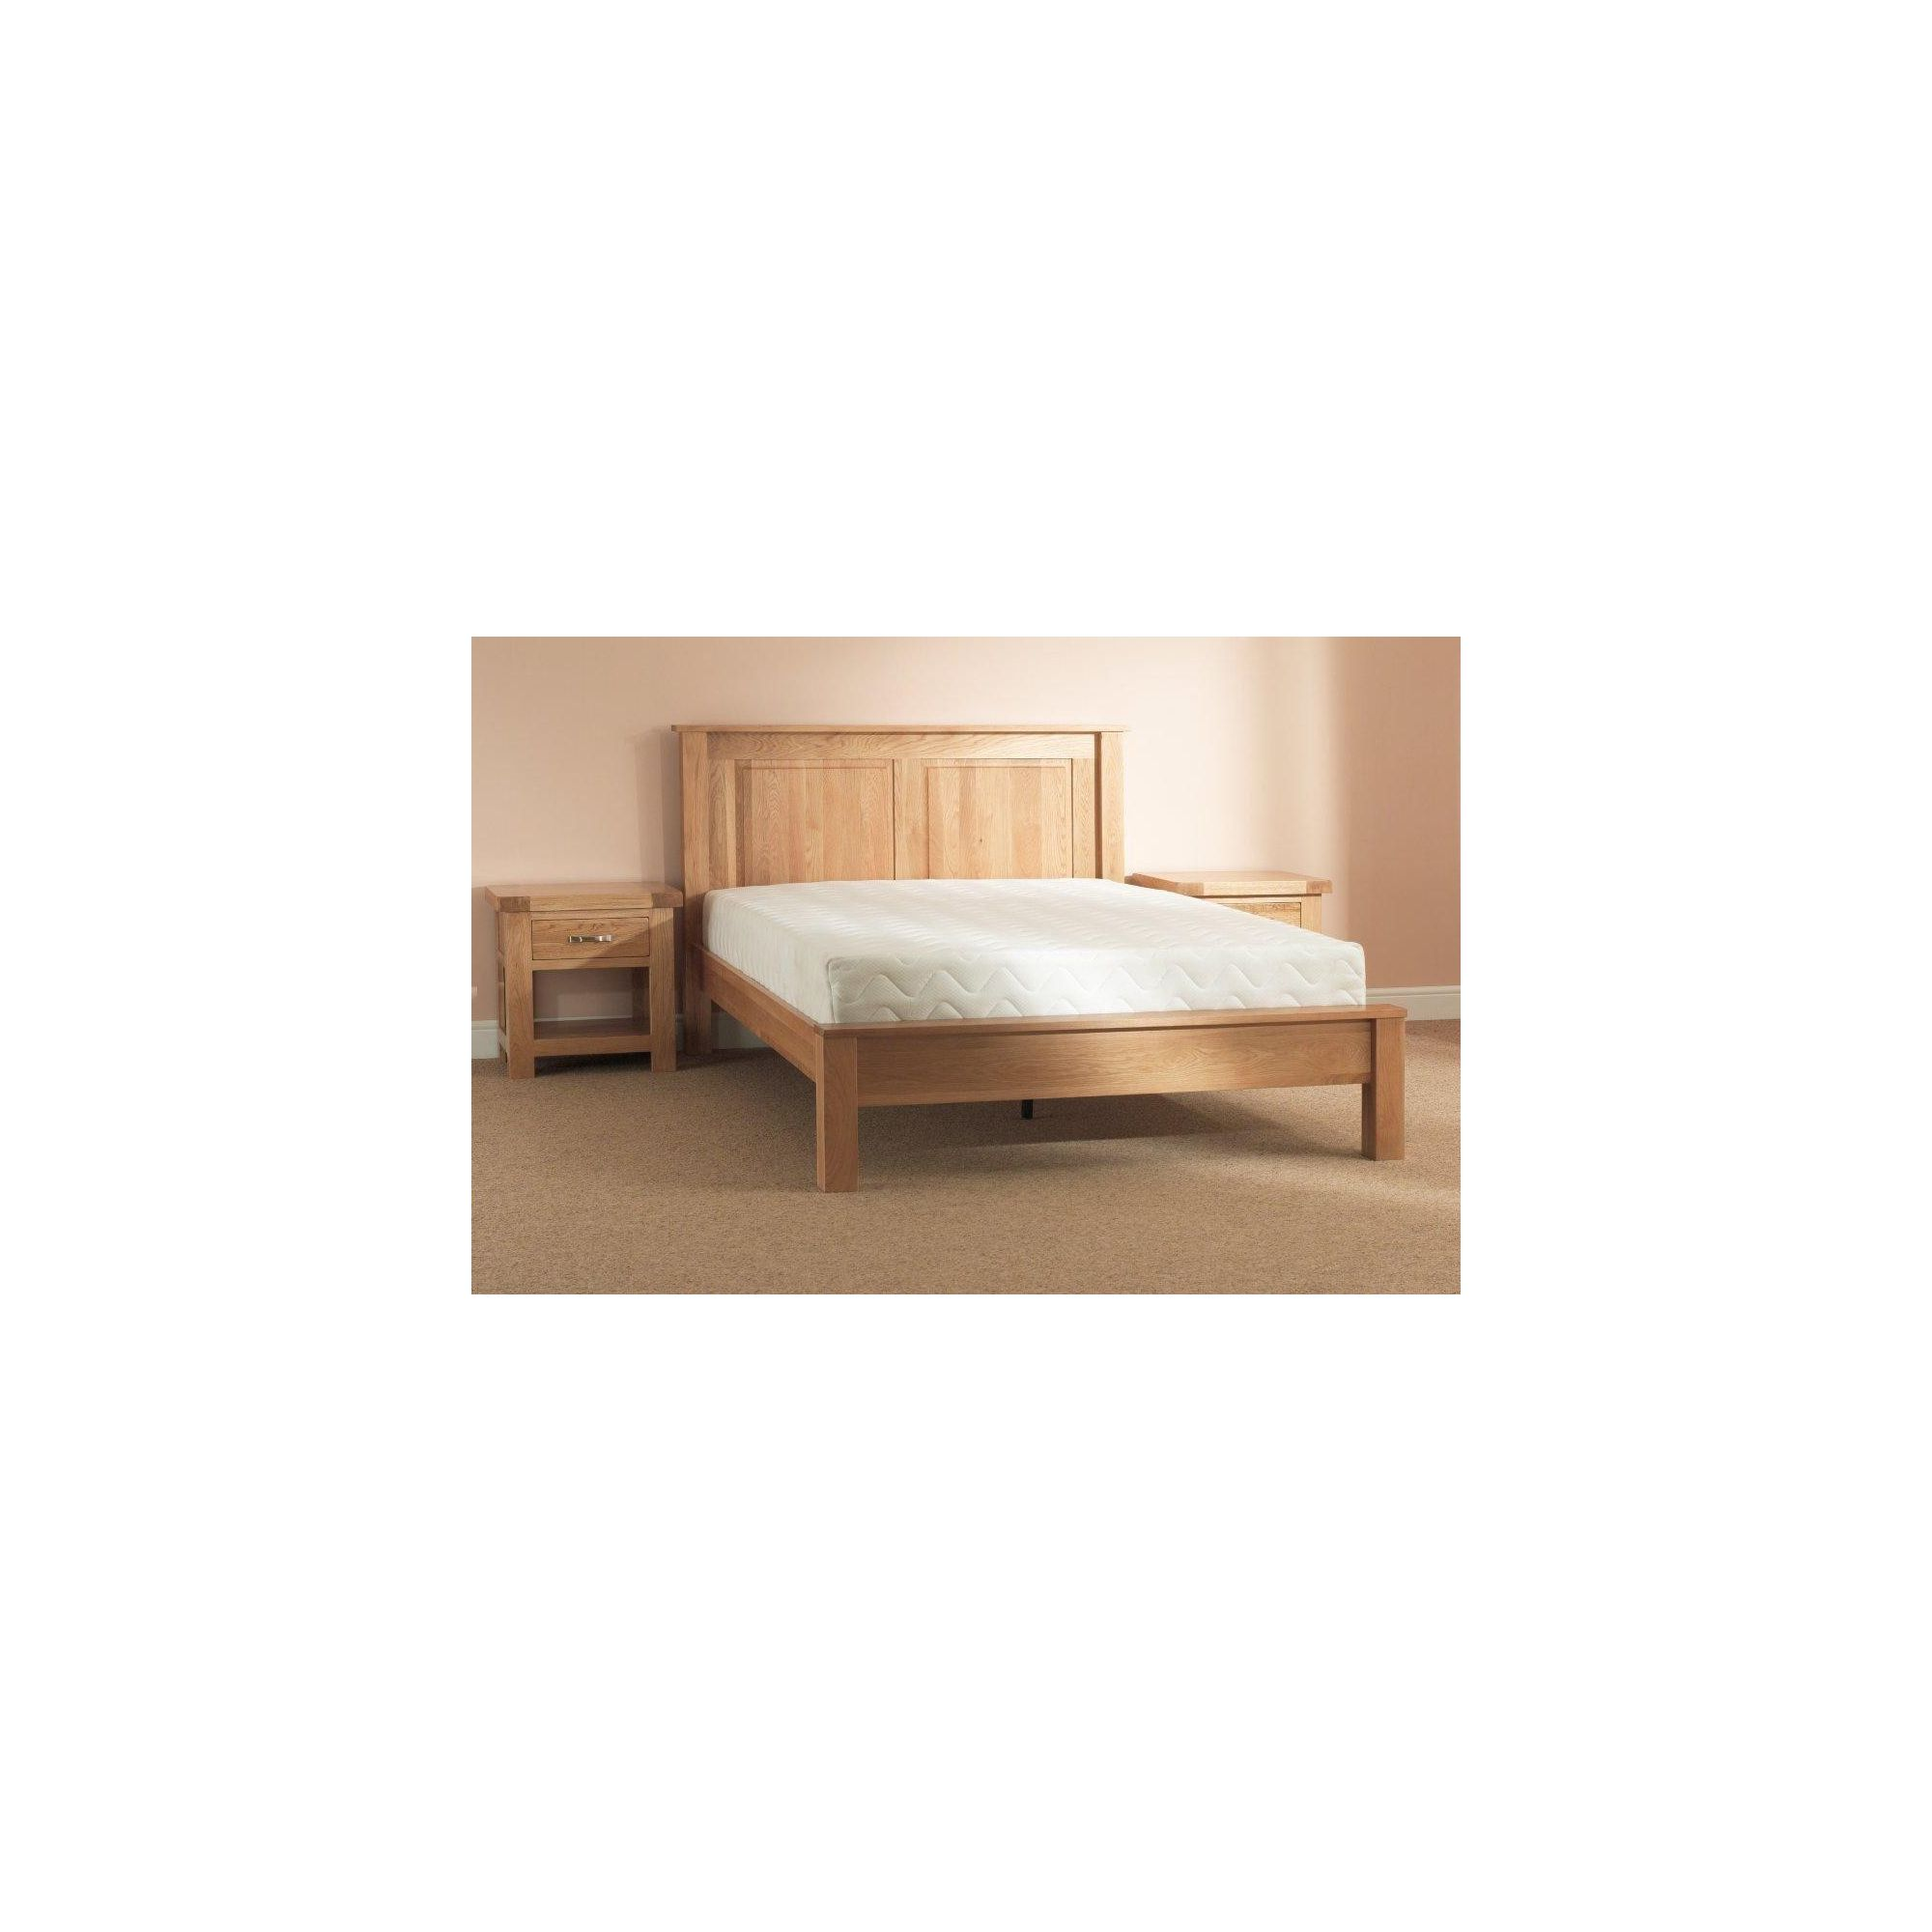 Sleepy Valley Oakham Bed - Double - No Drawers at Tesco Direct